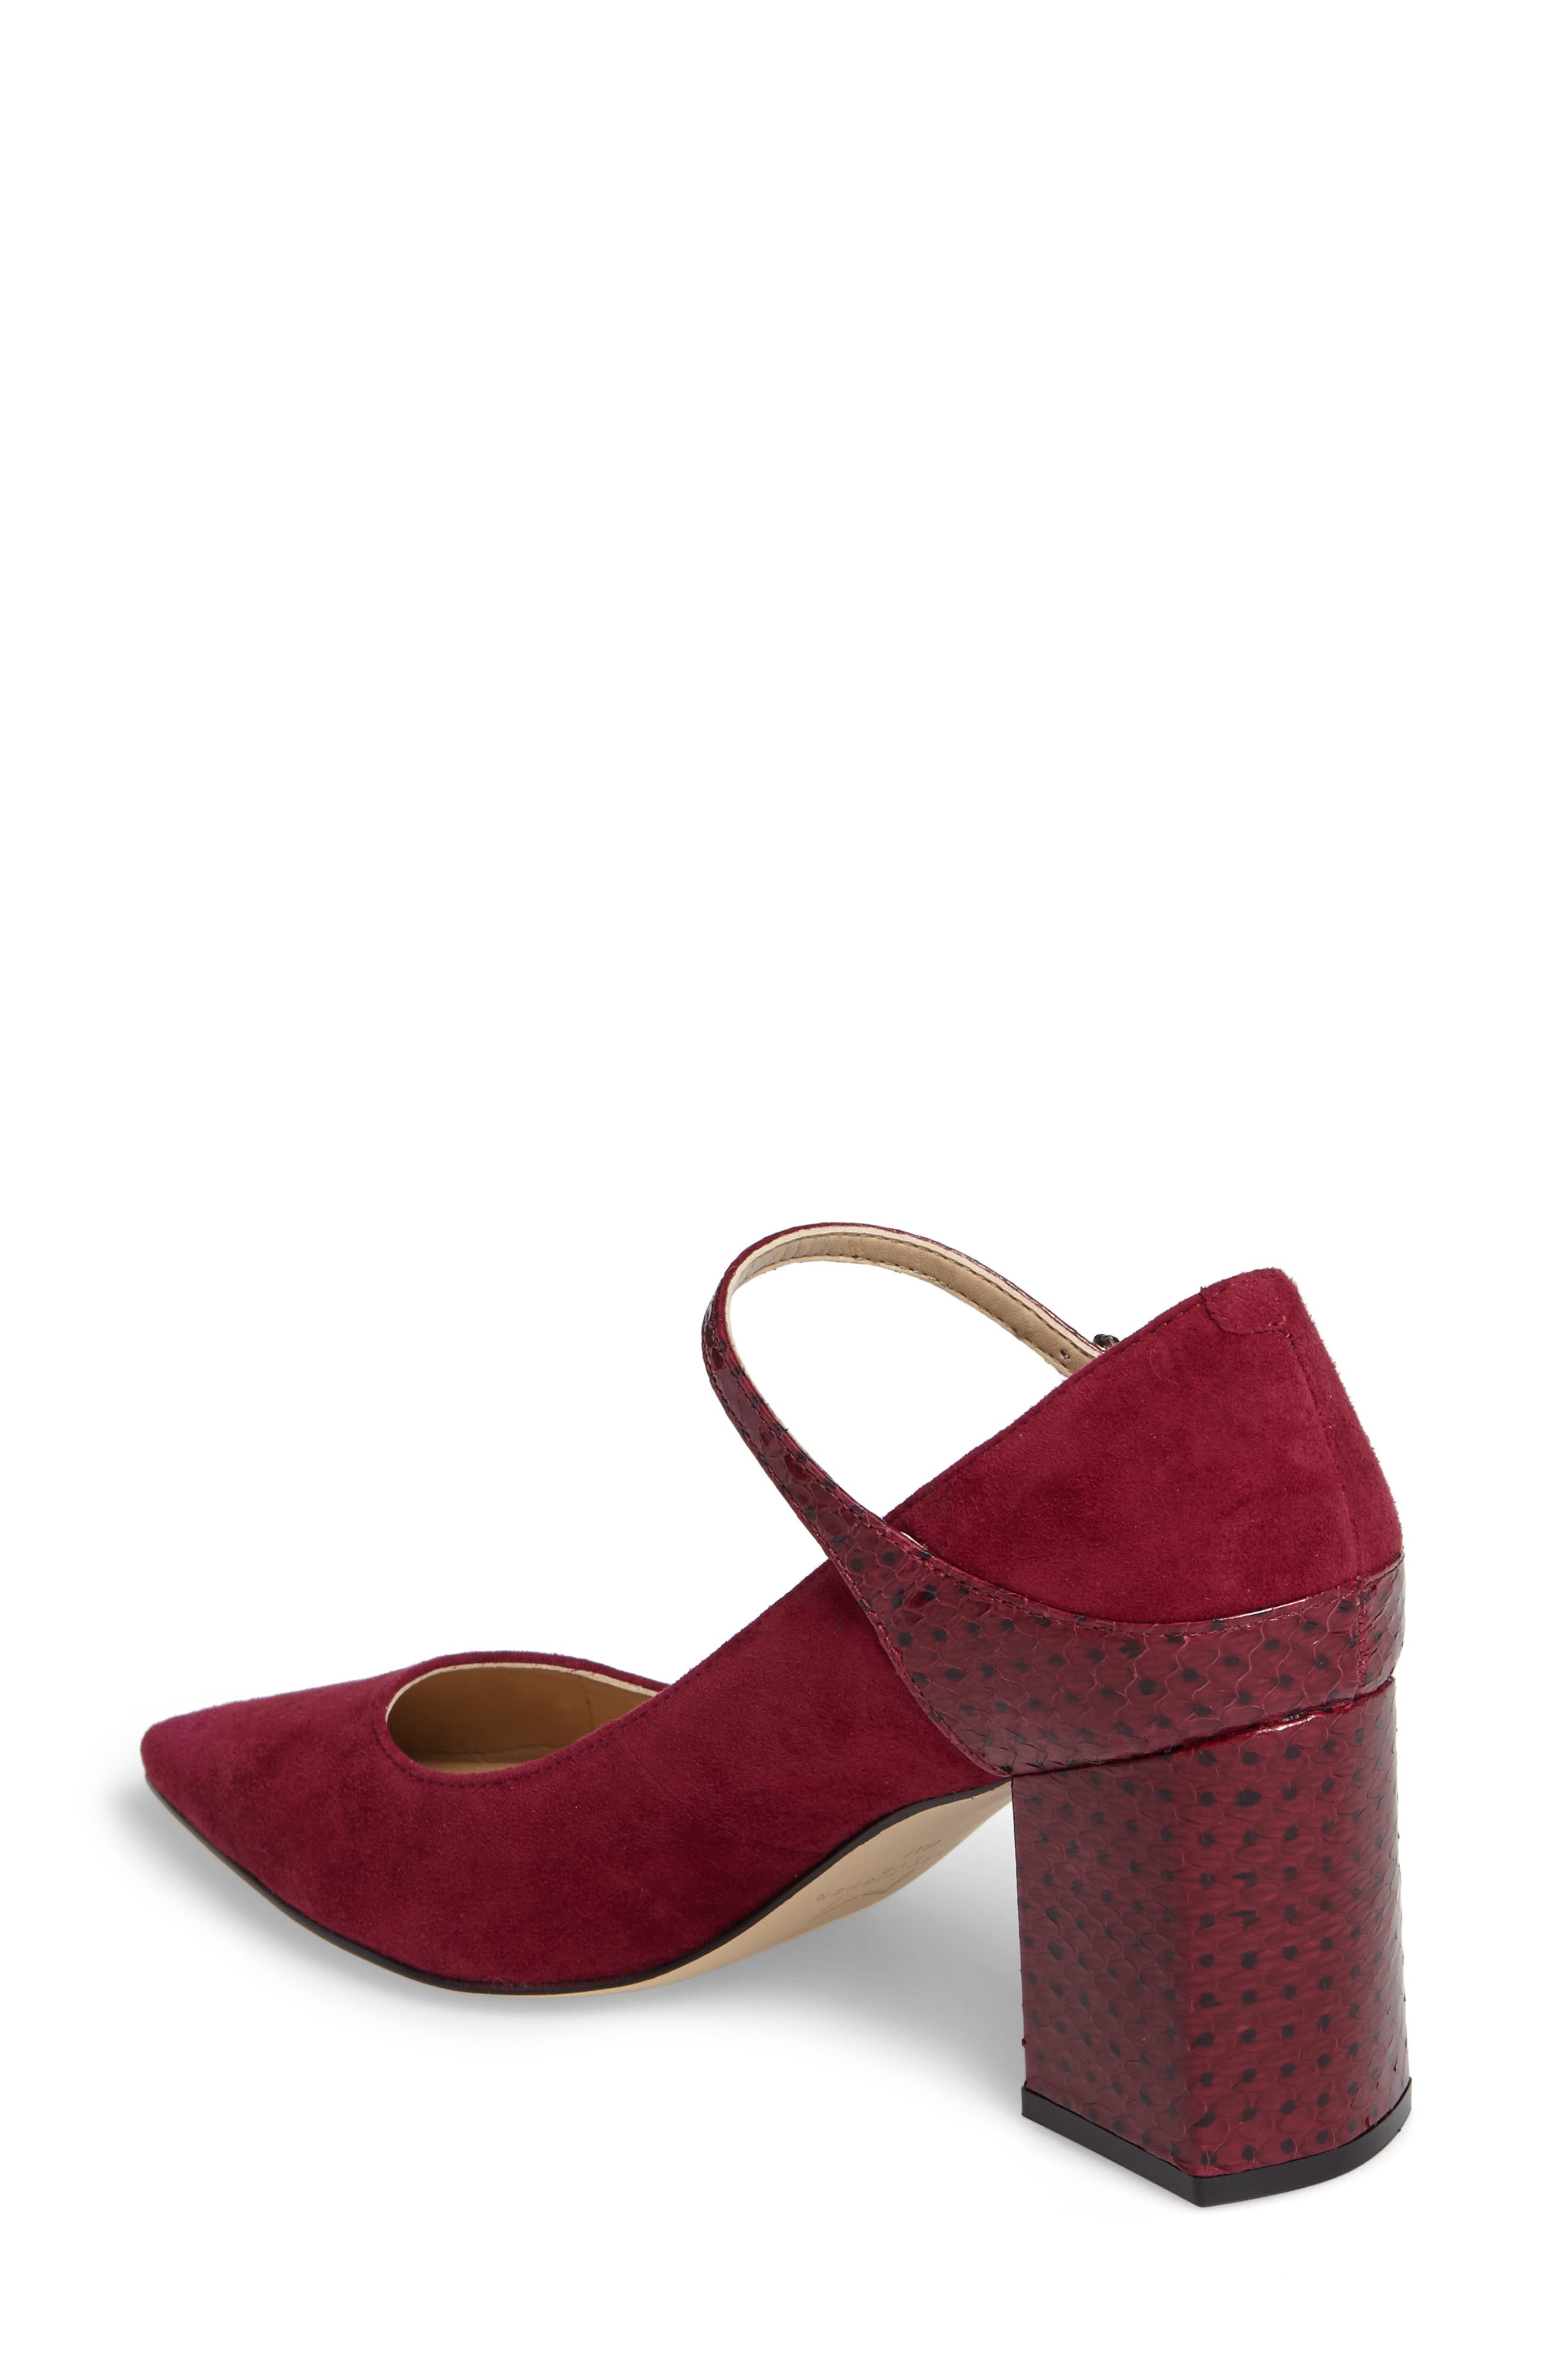 Zullys Snake Embossed Mary Jane Pump,                             Alternate thumbnail 2, color,                             Berry/ Berry Leather